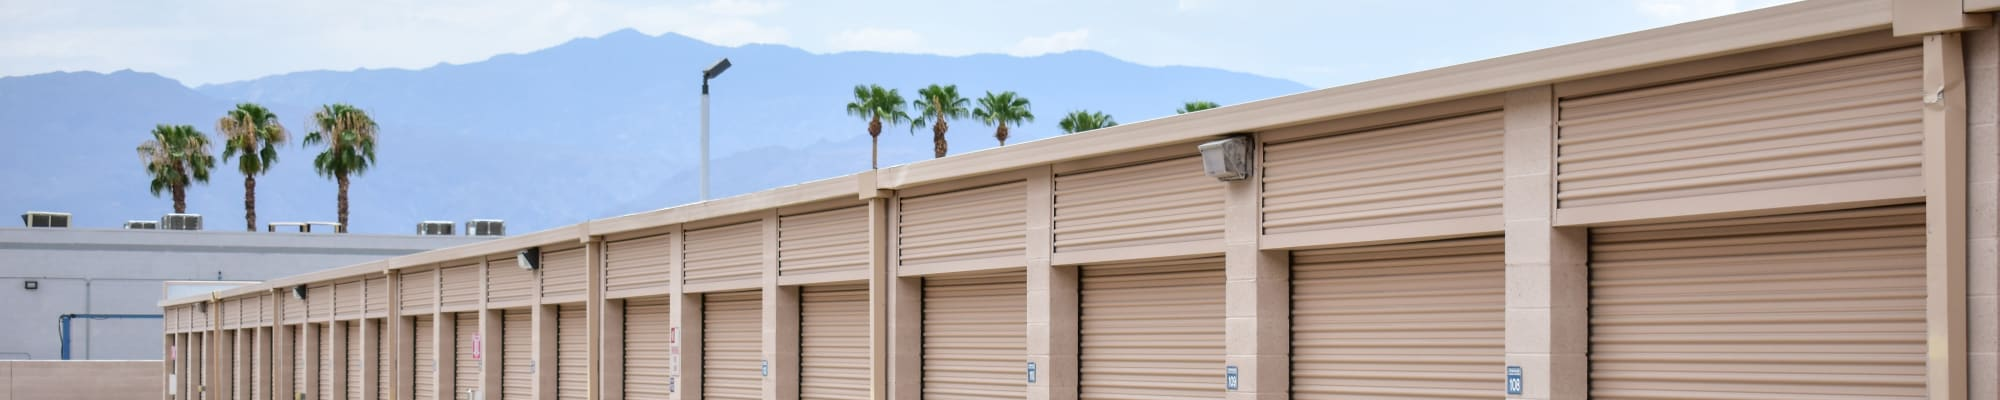 Unit sizes and prices at STOR-N-LOCK Self Storage in Palm Desert, California